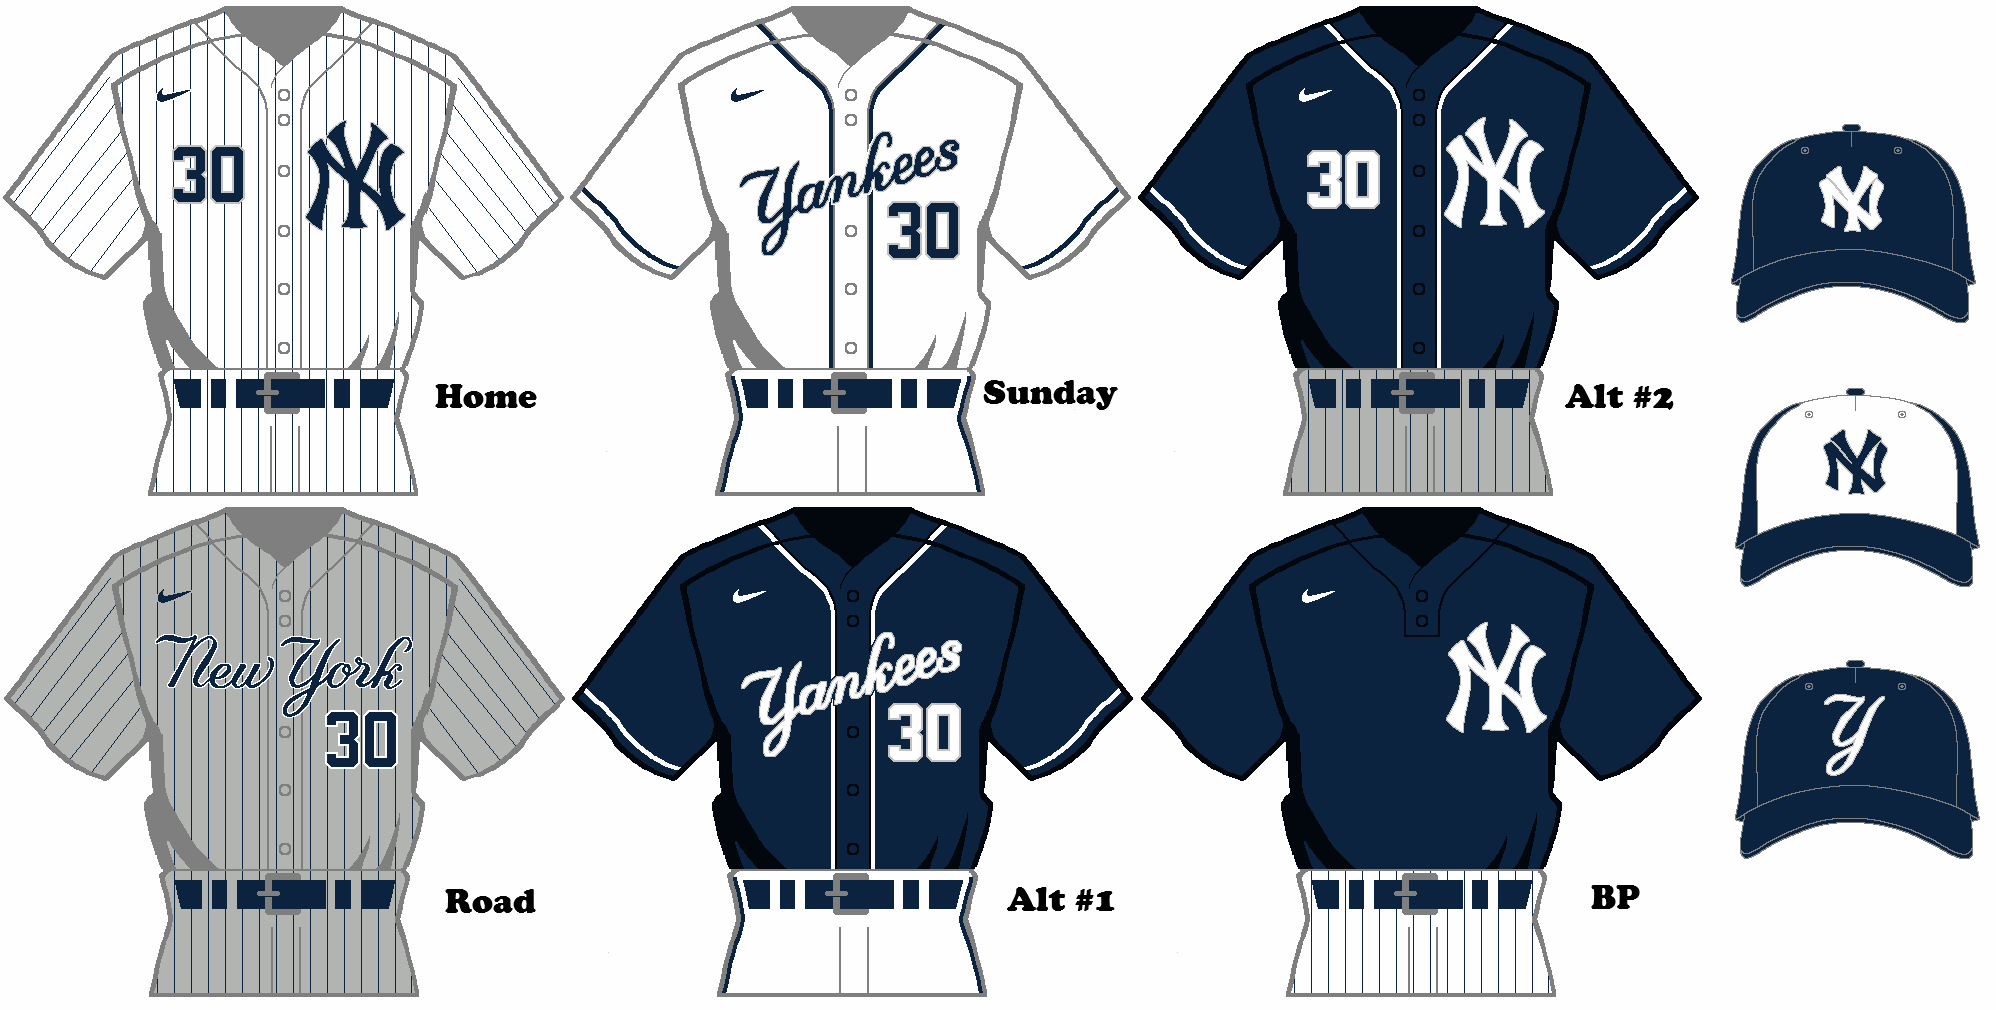 New York Yankees Rebrand New York Yankees Mlb Uniforms Yankees Baseball